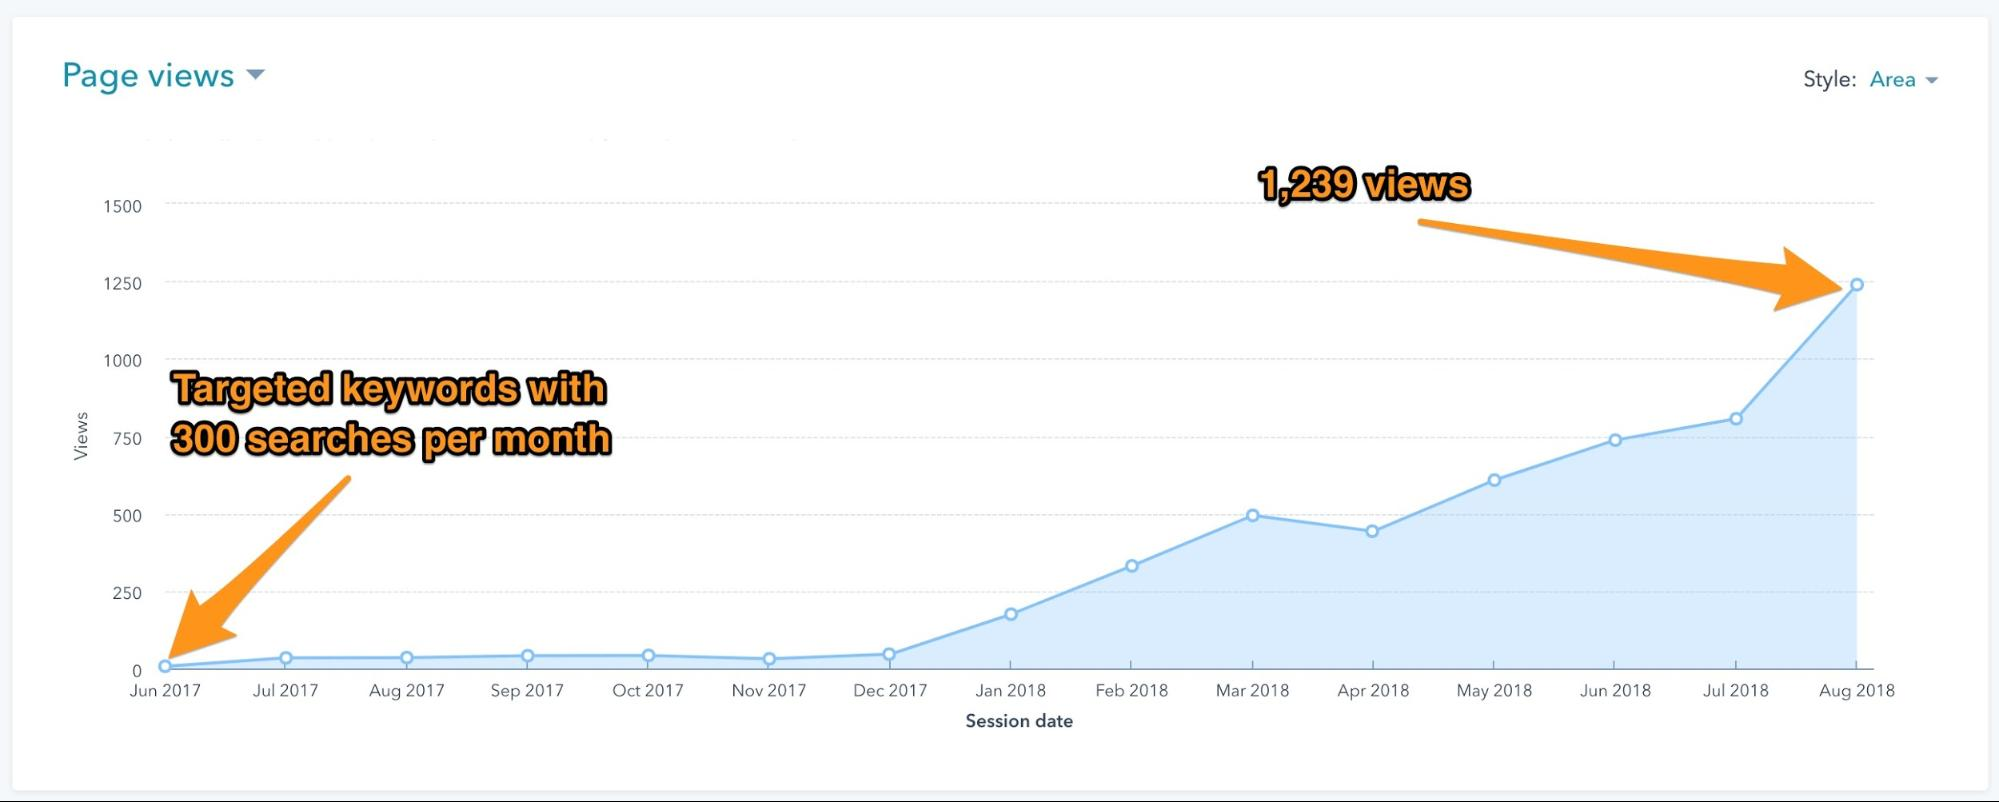 Page views for BalancedBack's™ comparison post